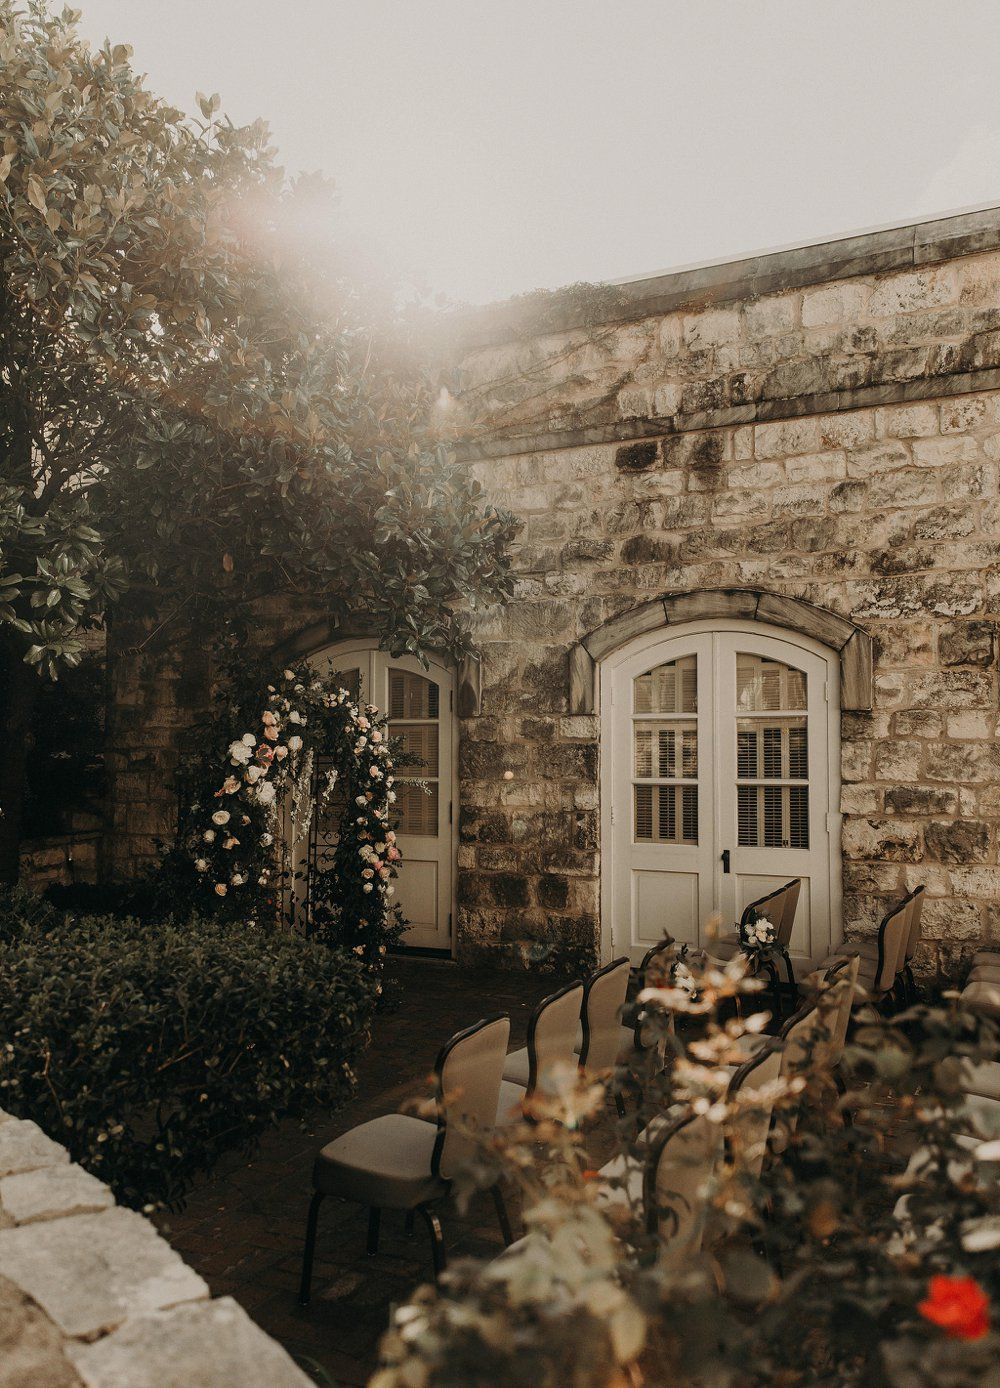 A Fairytale Wedding at the Chateau Bellevue in Texas A